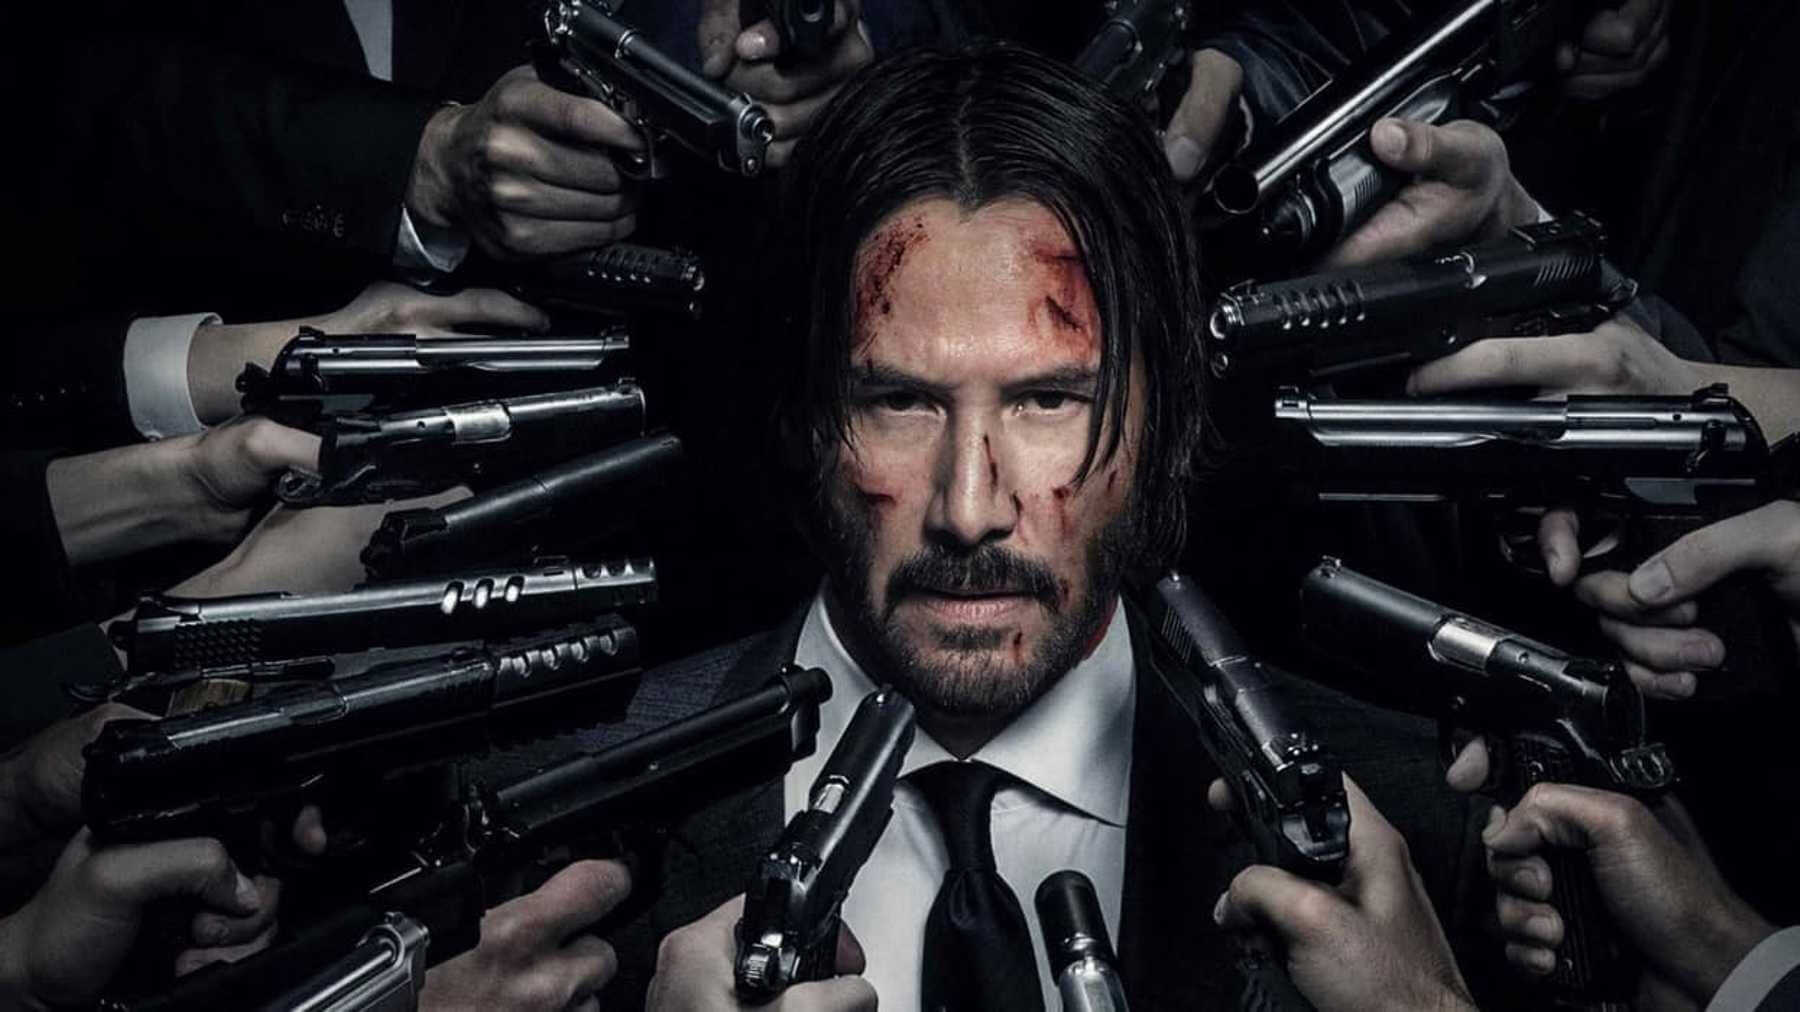 The Matrix 4 and John Wick 4 will release on the same day in May 2021